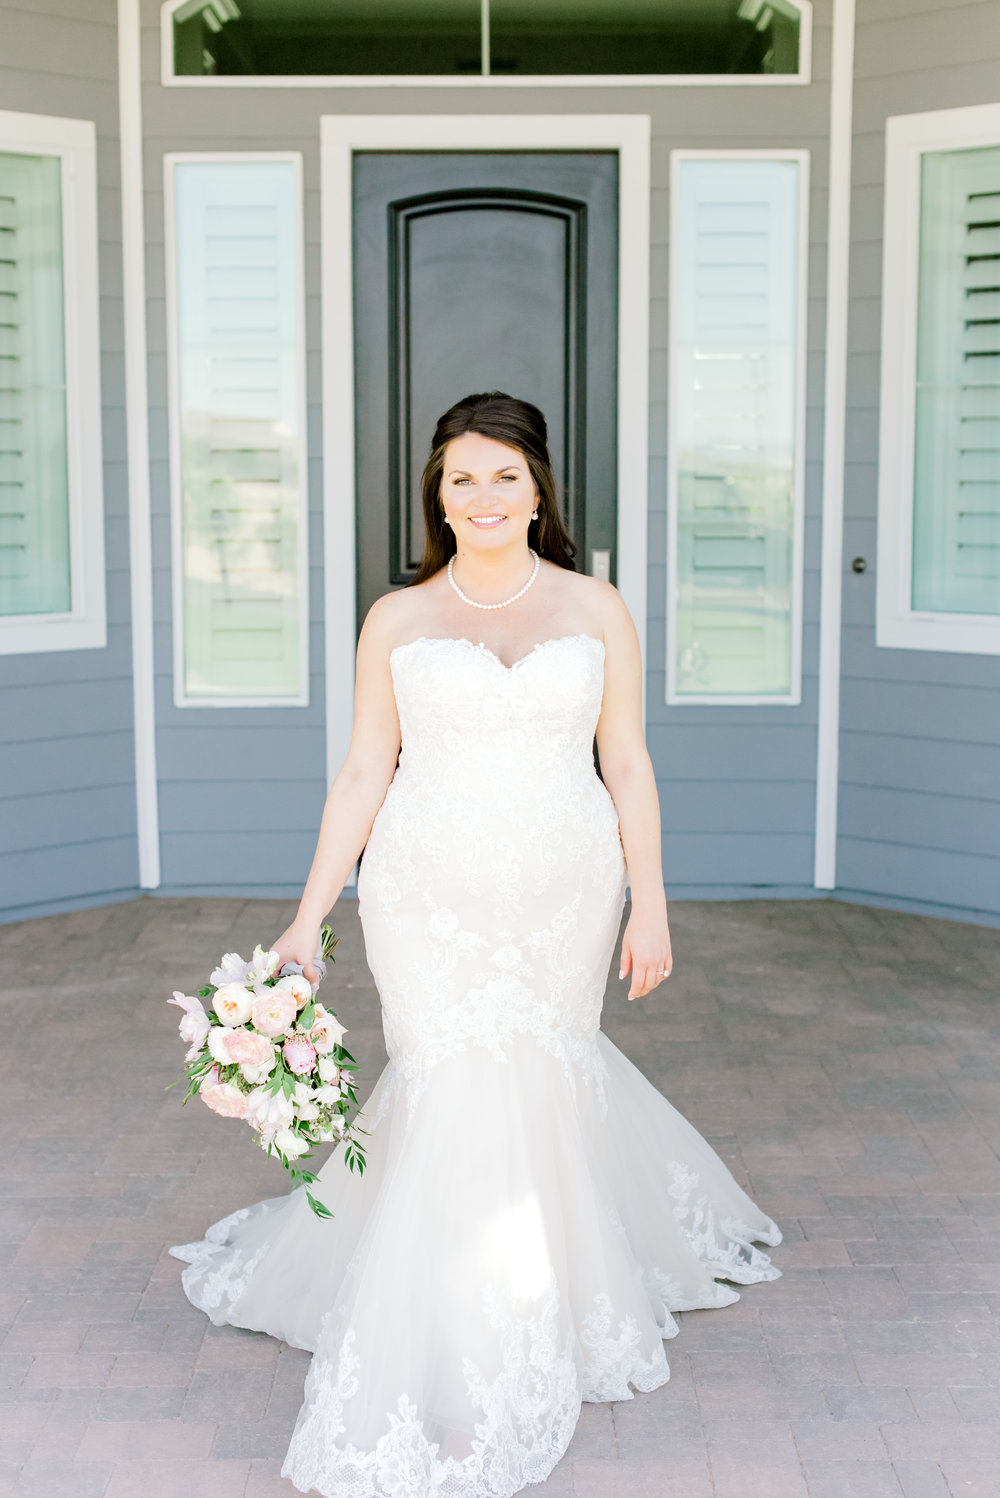 Blush and white backyard wedding - Bridal Portraits